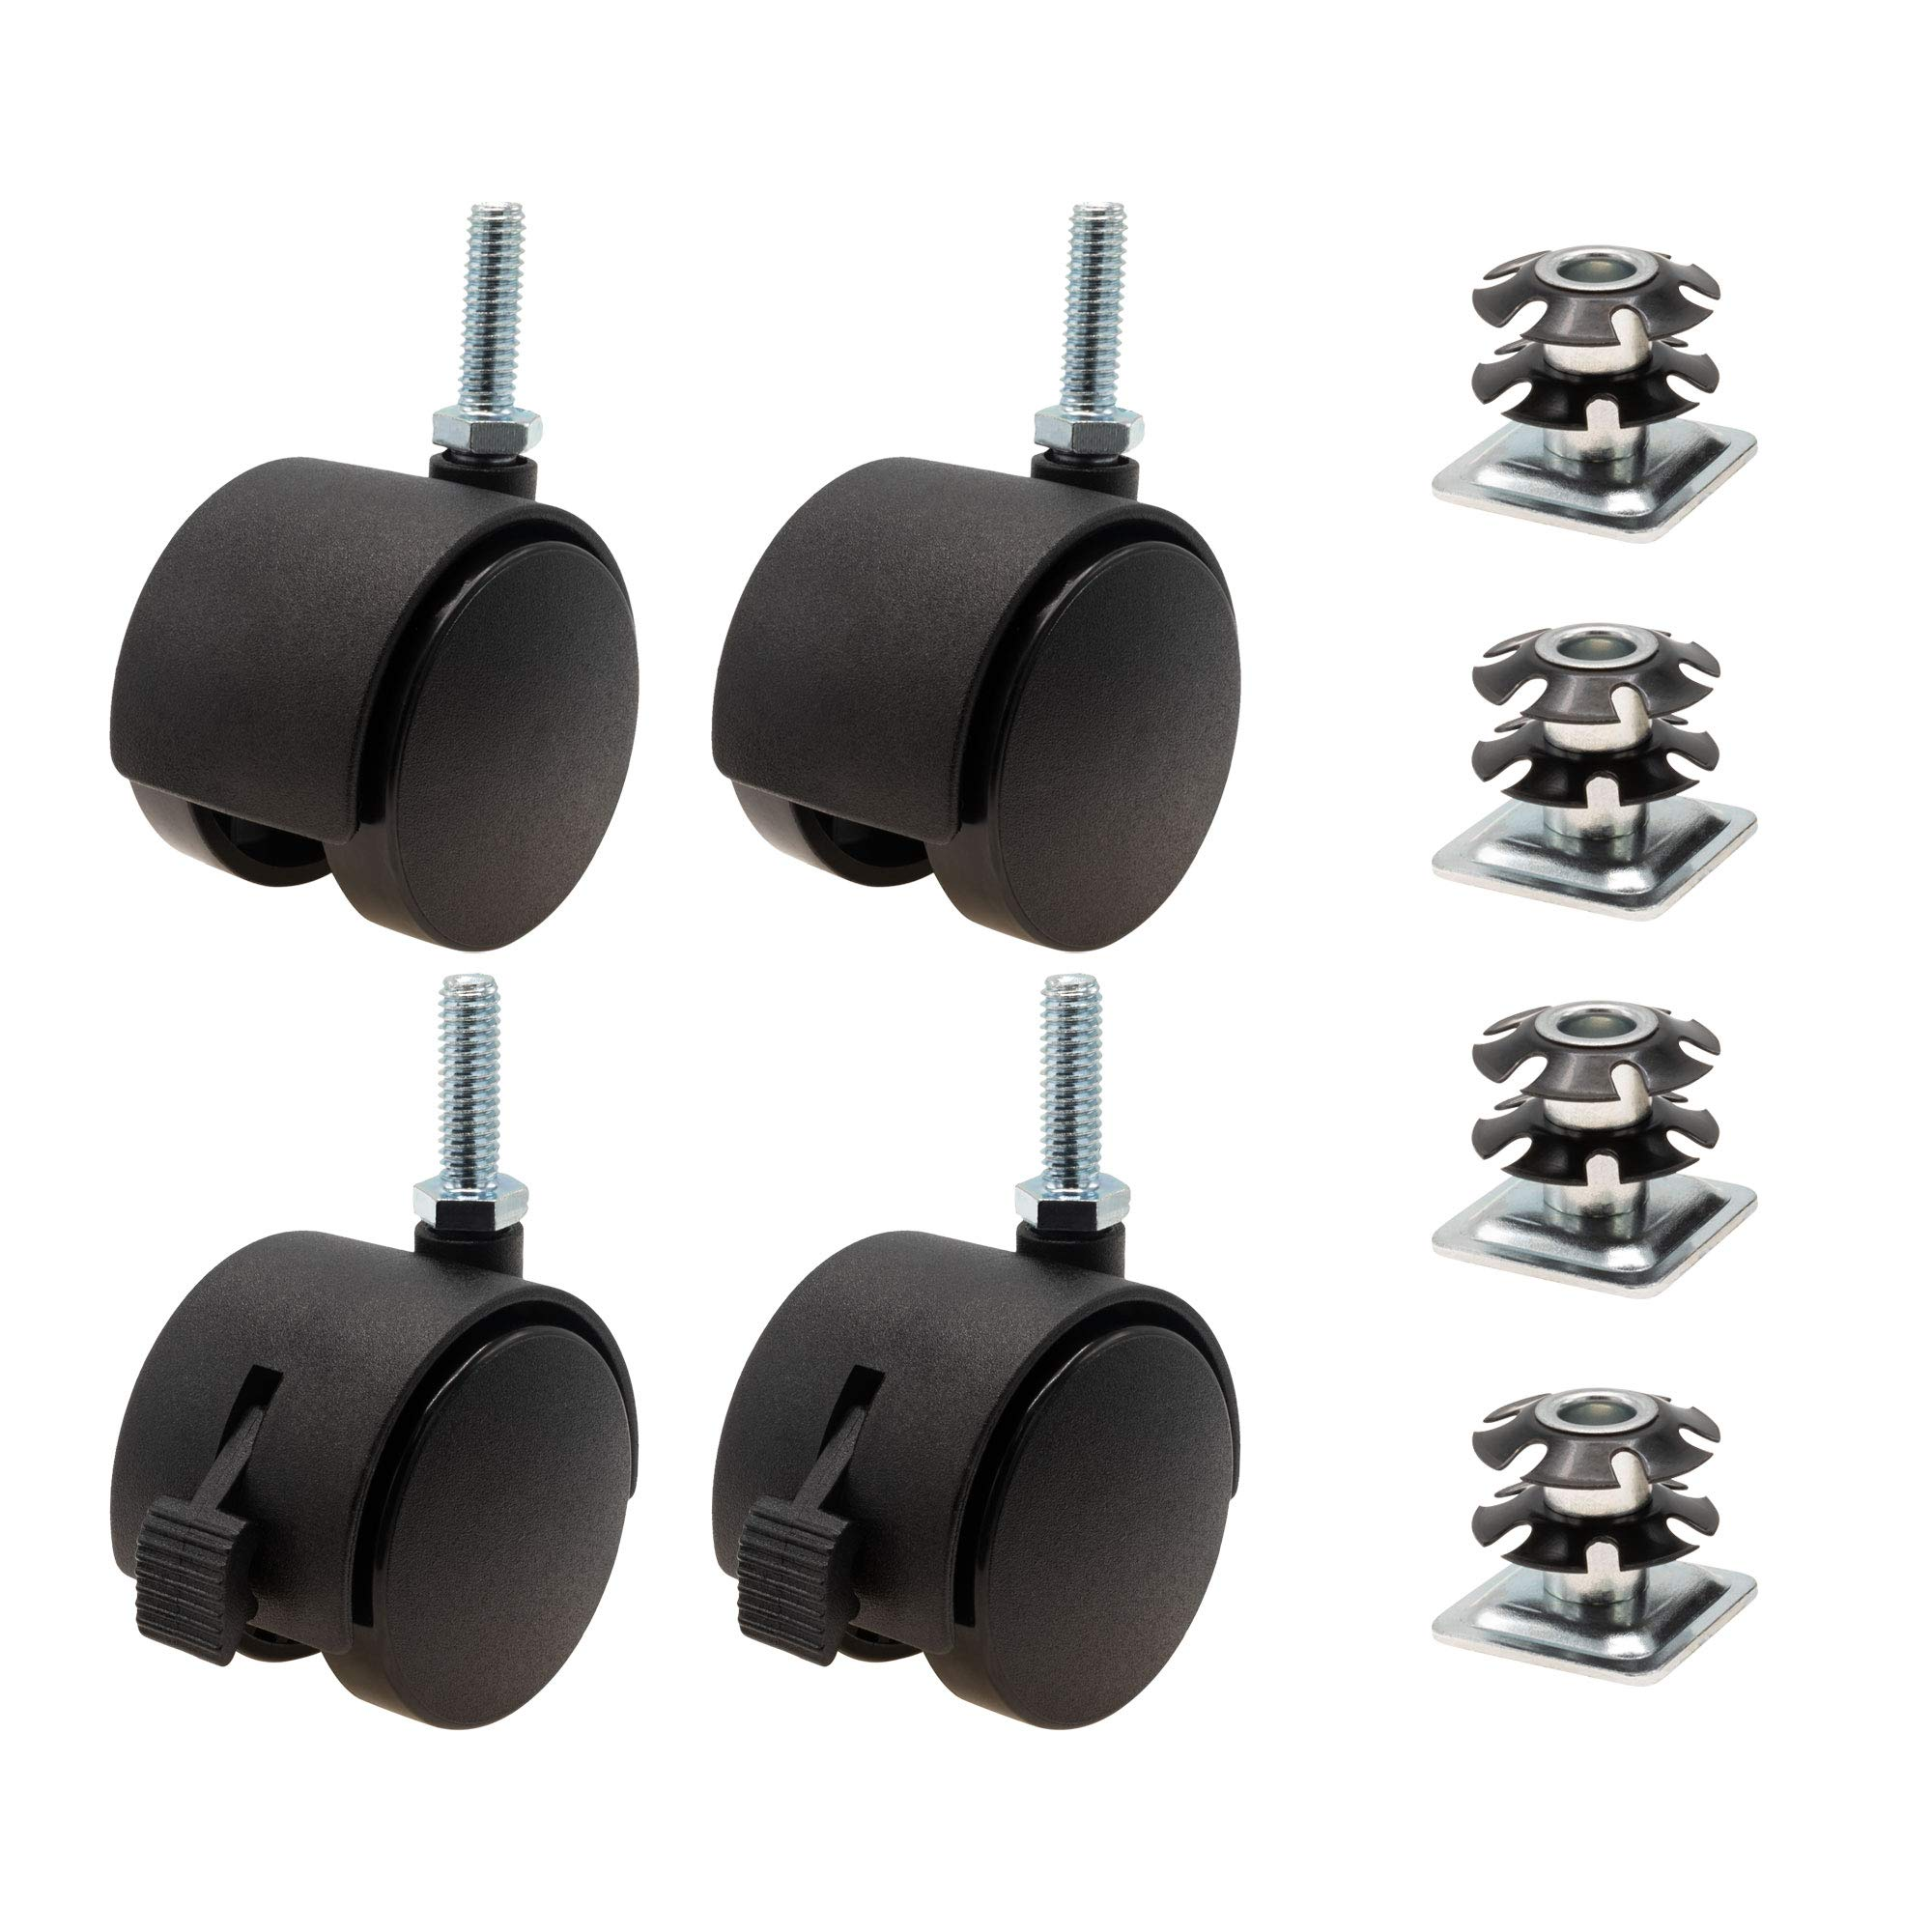 1-1/8 Inch Square Double Star Caster Insert and 2 Inch Black Swivel Non Hooded Twin Wheel Caster 2 with Brakes 2 Without Brakes 4 Pack by Outwater